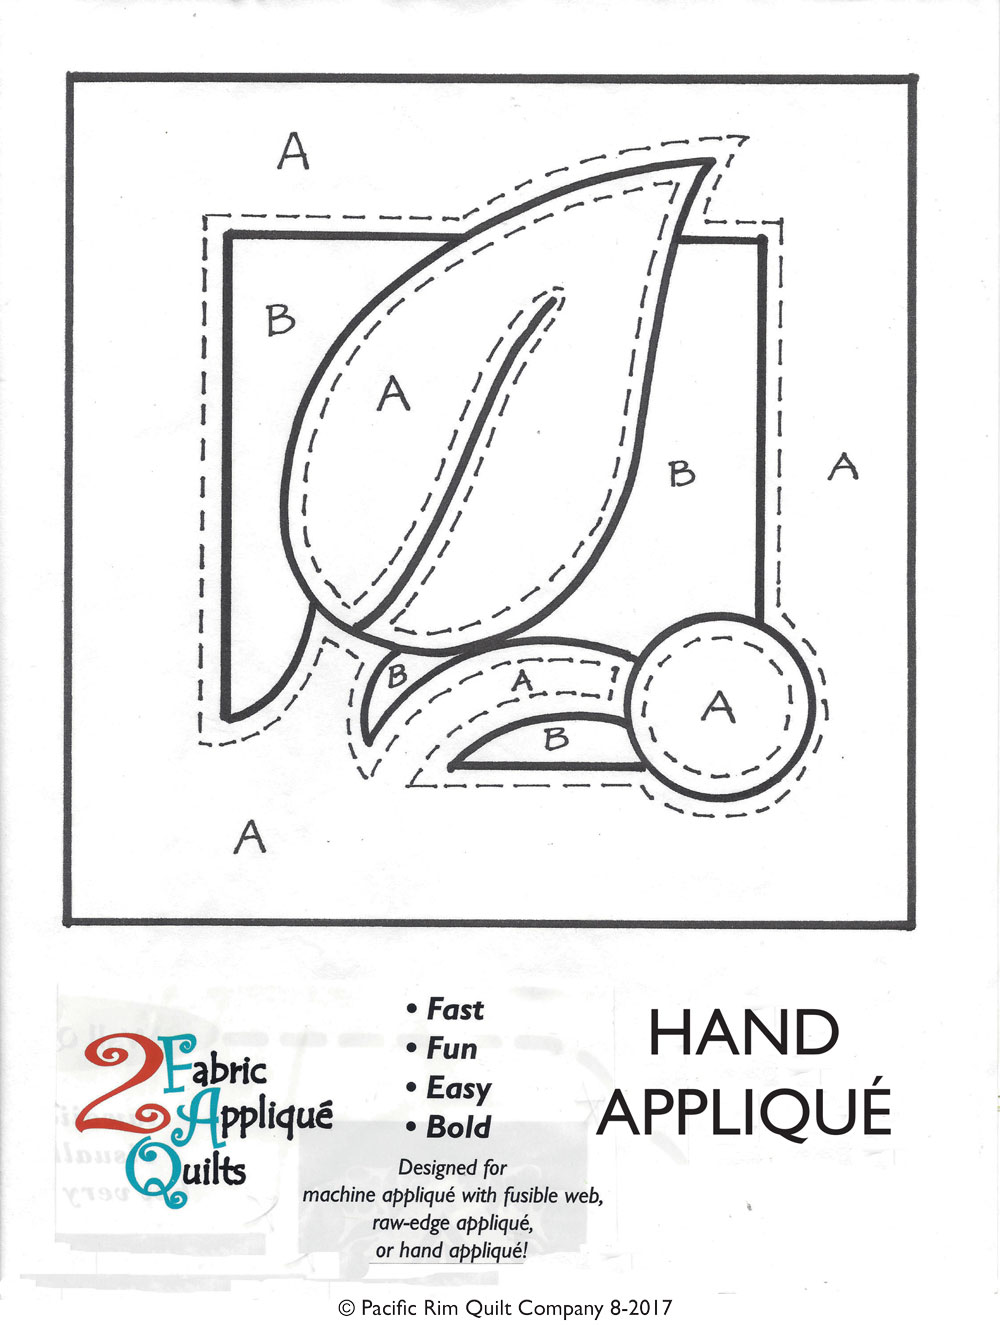 2 Fabric Applique Quilt Patterns by hand, instructions